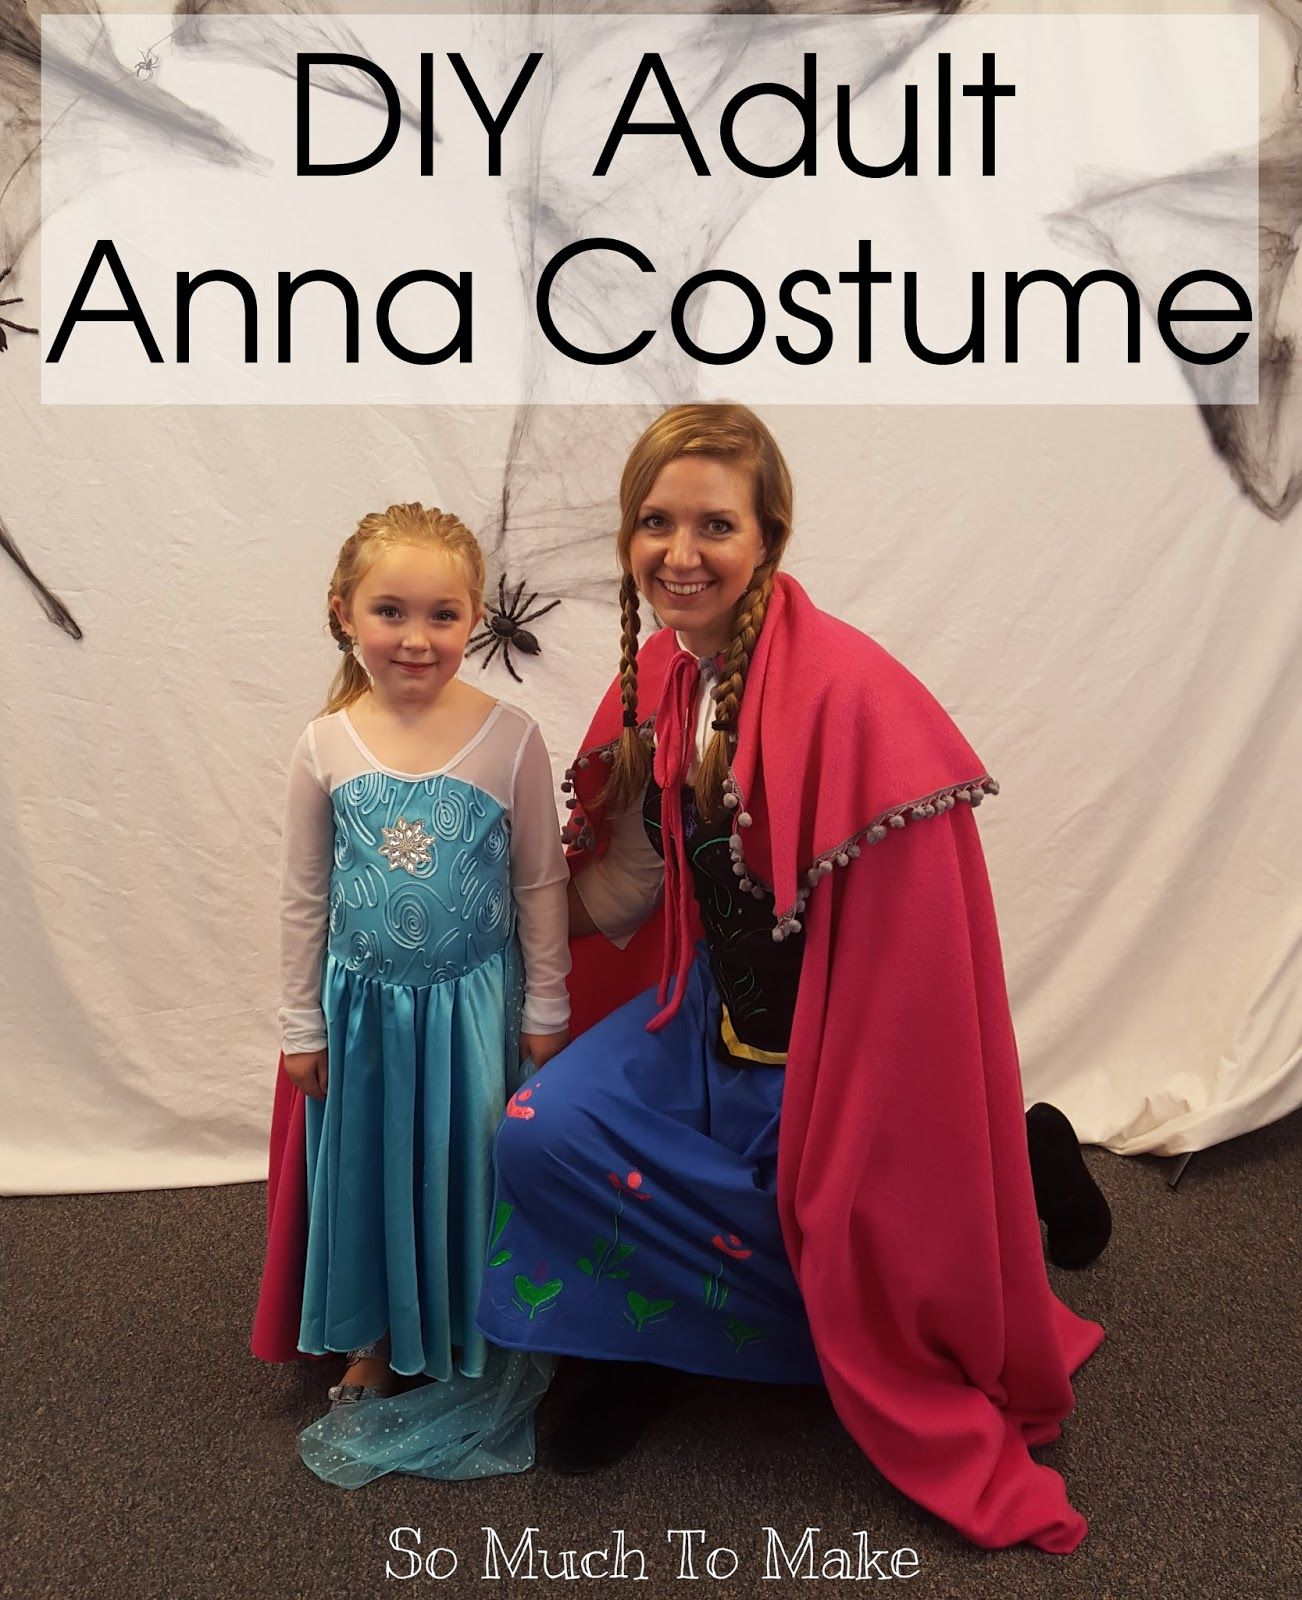 bd84999554 So Much To Make  DIY Adult Anna Costume. Make in a day with inexpensive  materials--most found at Walmart!